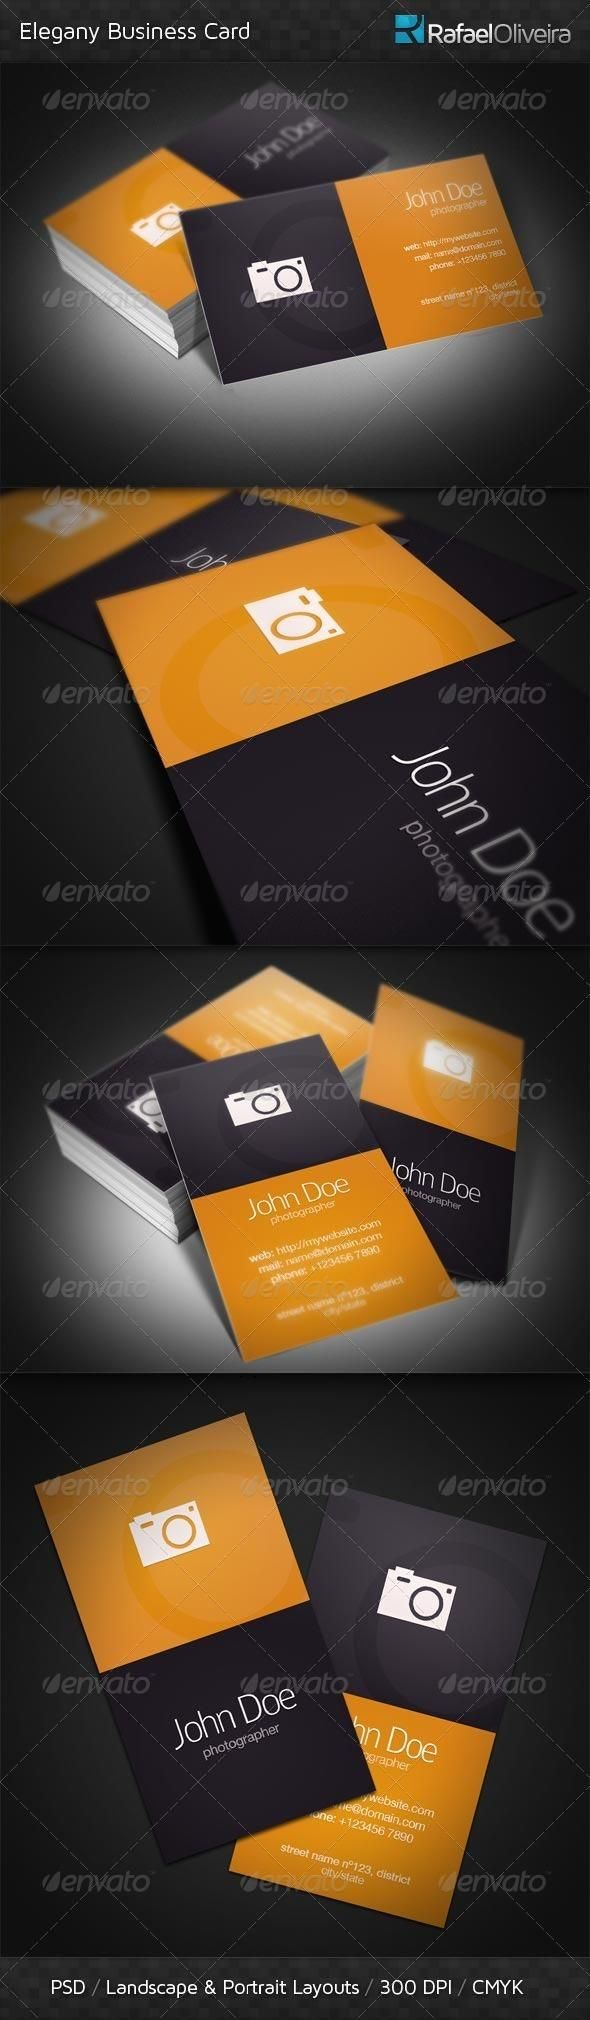 The 1661 best business card design images on pinterest business elegany business card reheart Images